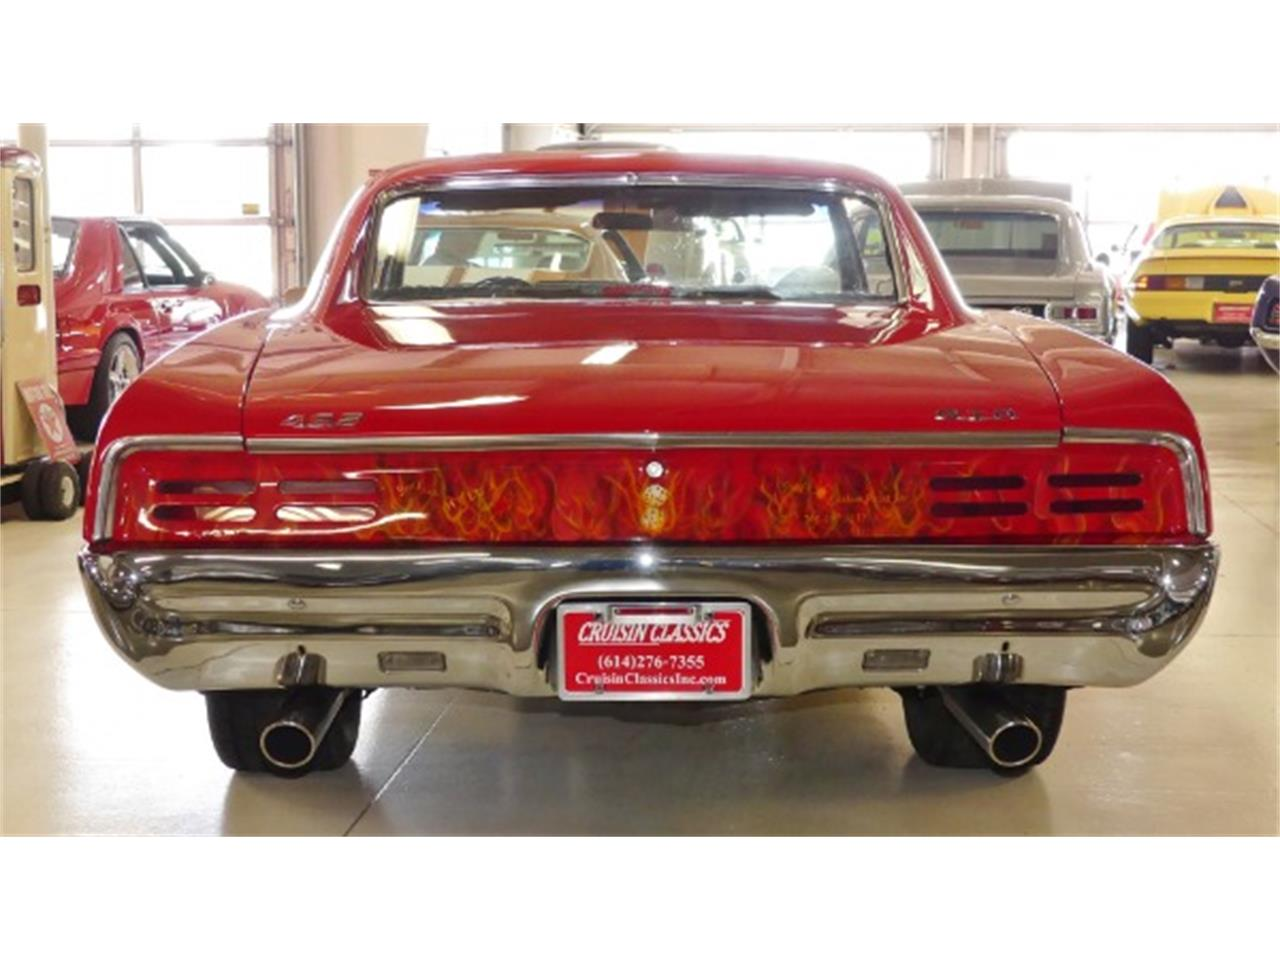 Large Picture of '67 Tempest - $27,995.00 Offered by Cruisin Classics - QPPZ